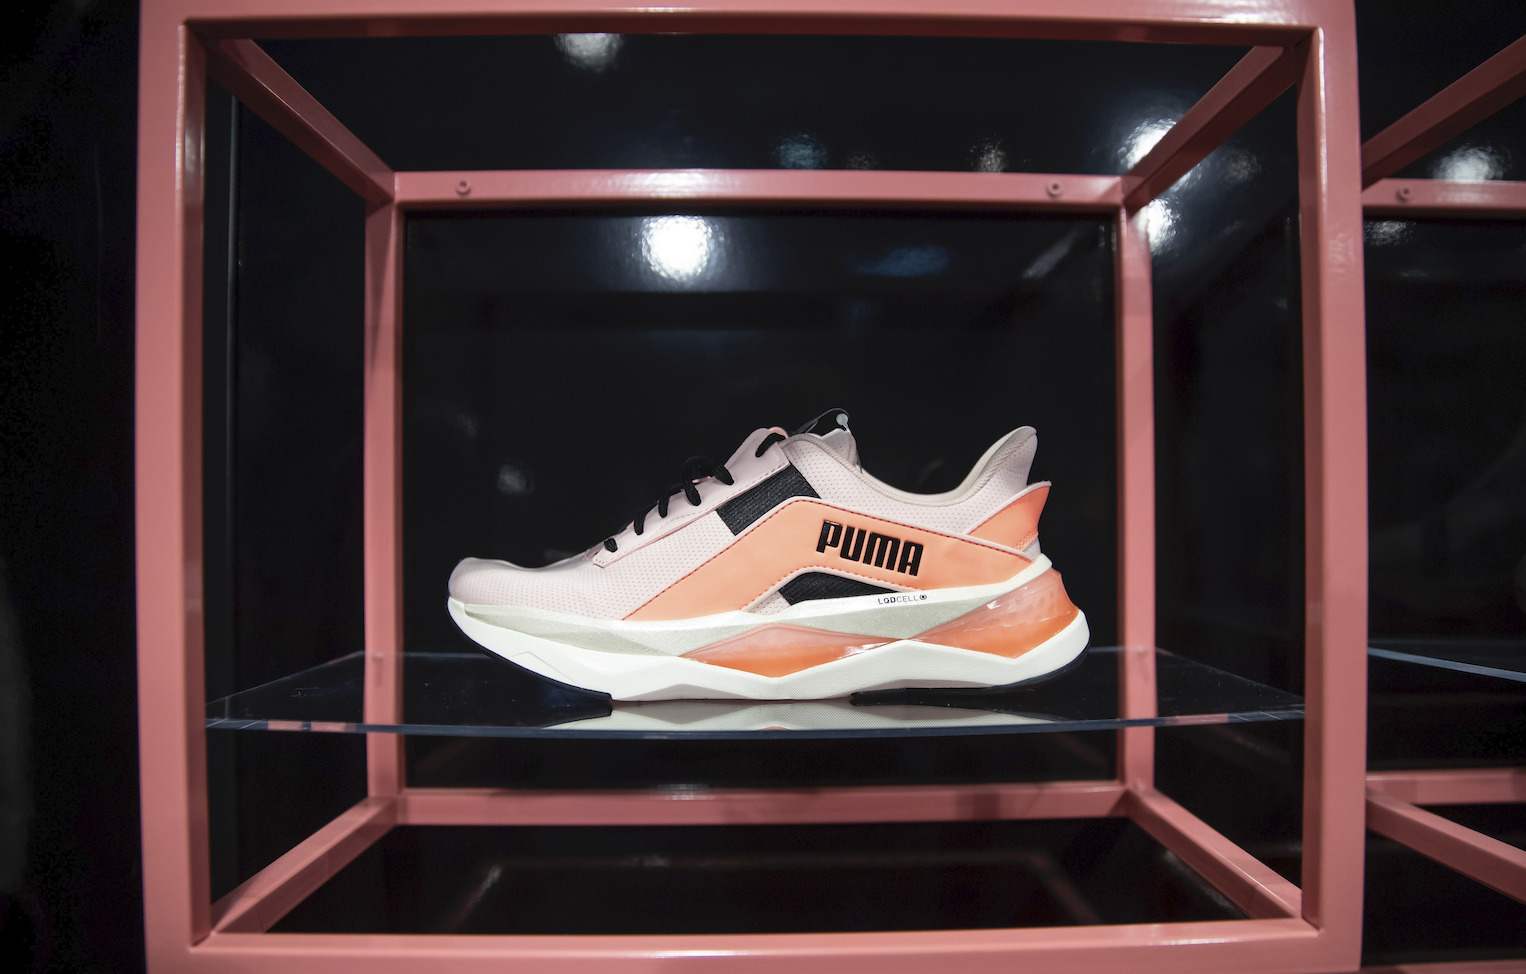 Luxury giant Kering is offloading a 5.9 percent stake in Puma, selling 8.9 million shares and knocking its current stake to just 4 percent.